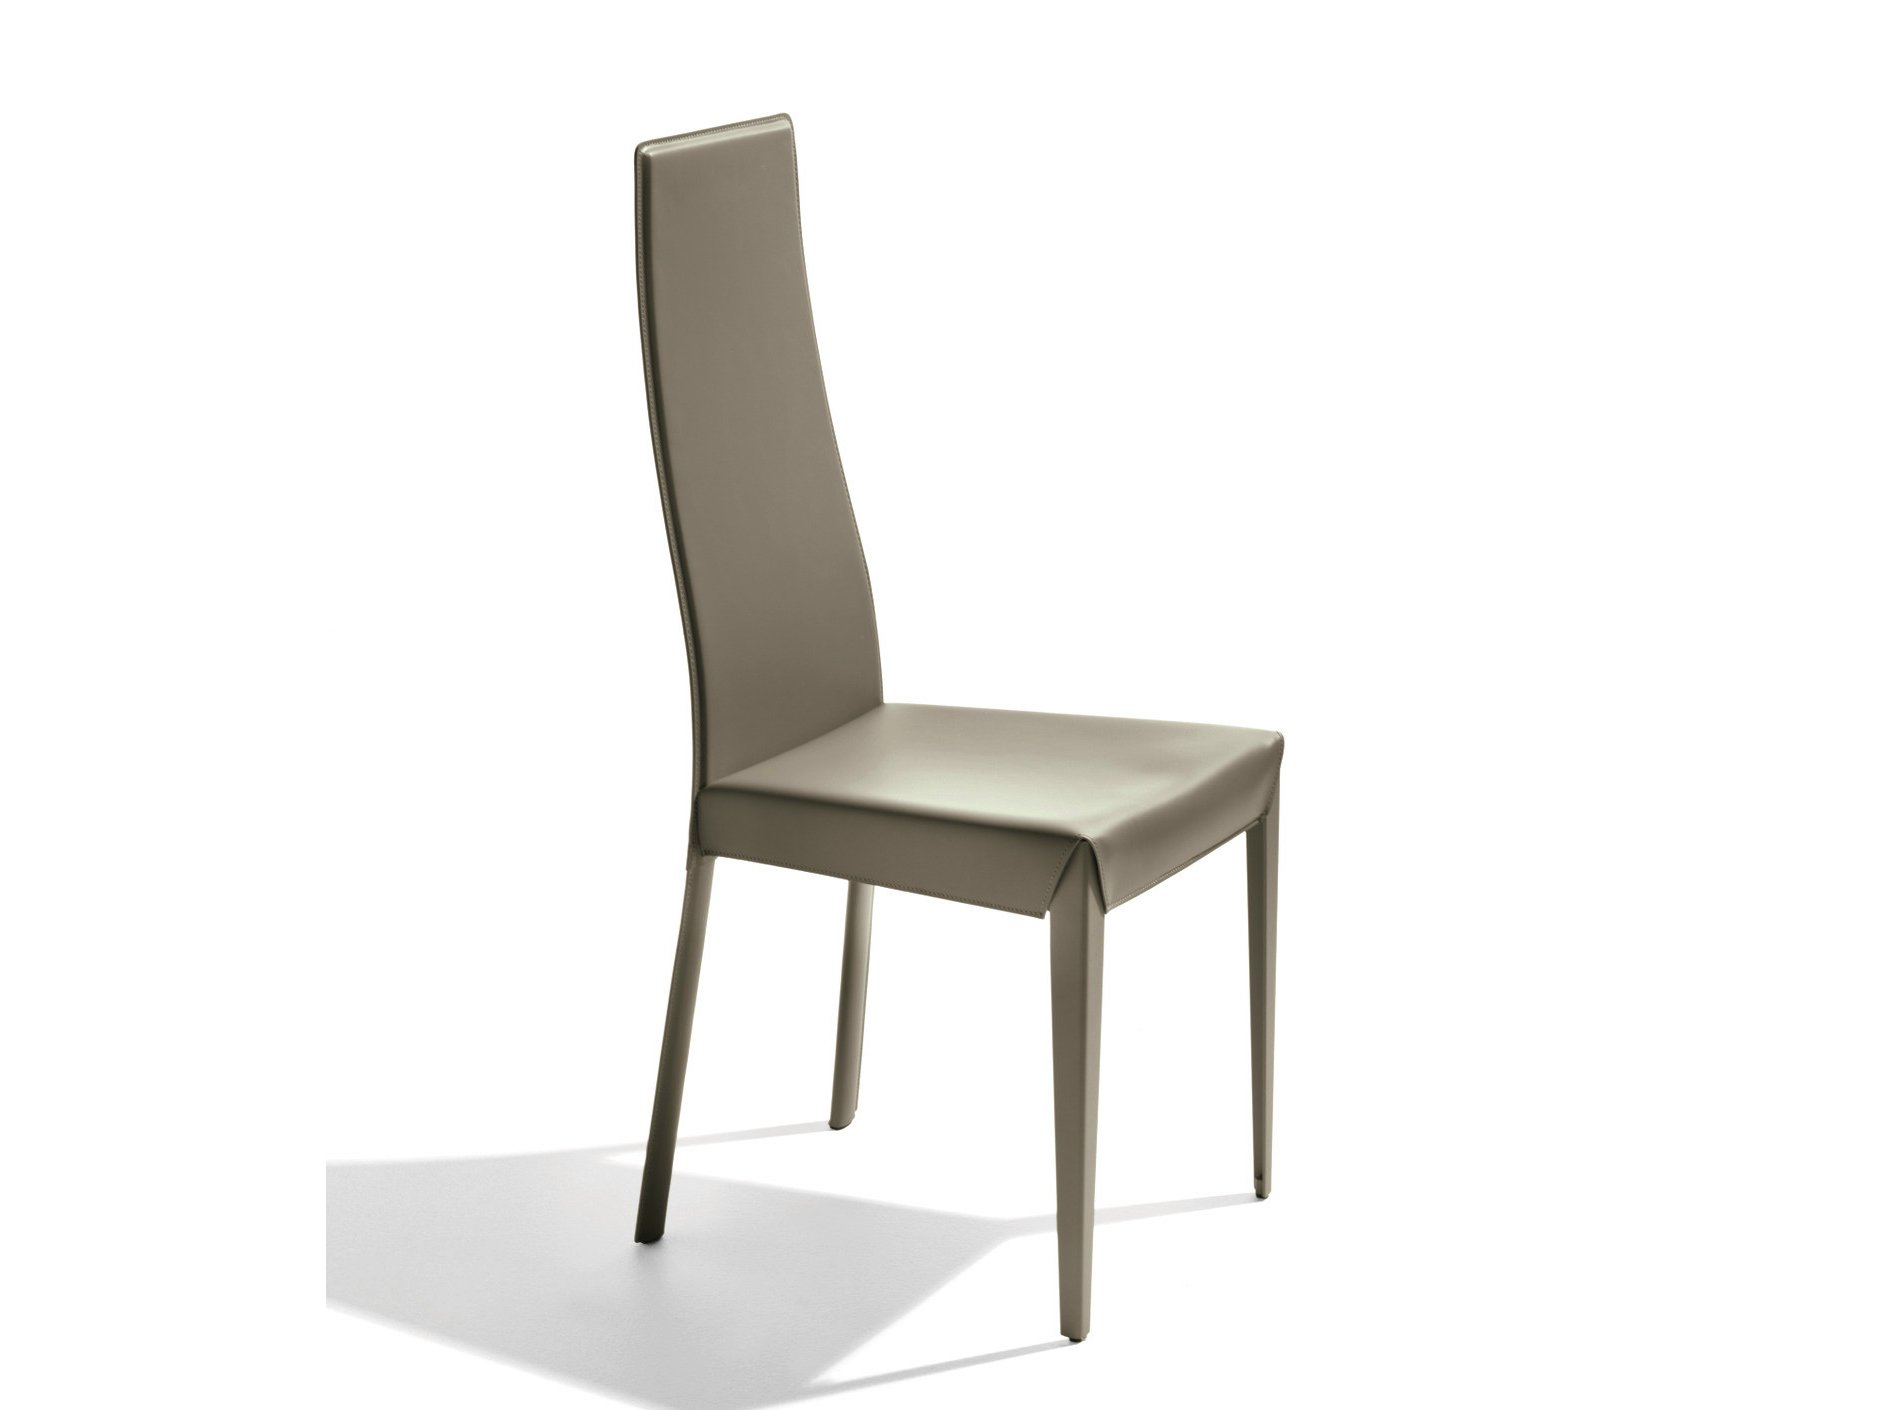 UPHOLSTERED HIGH-BACK TANNED LEATHER CHAIR NASH CHAIRS